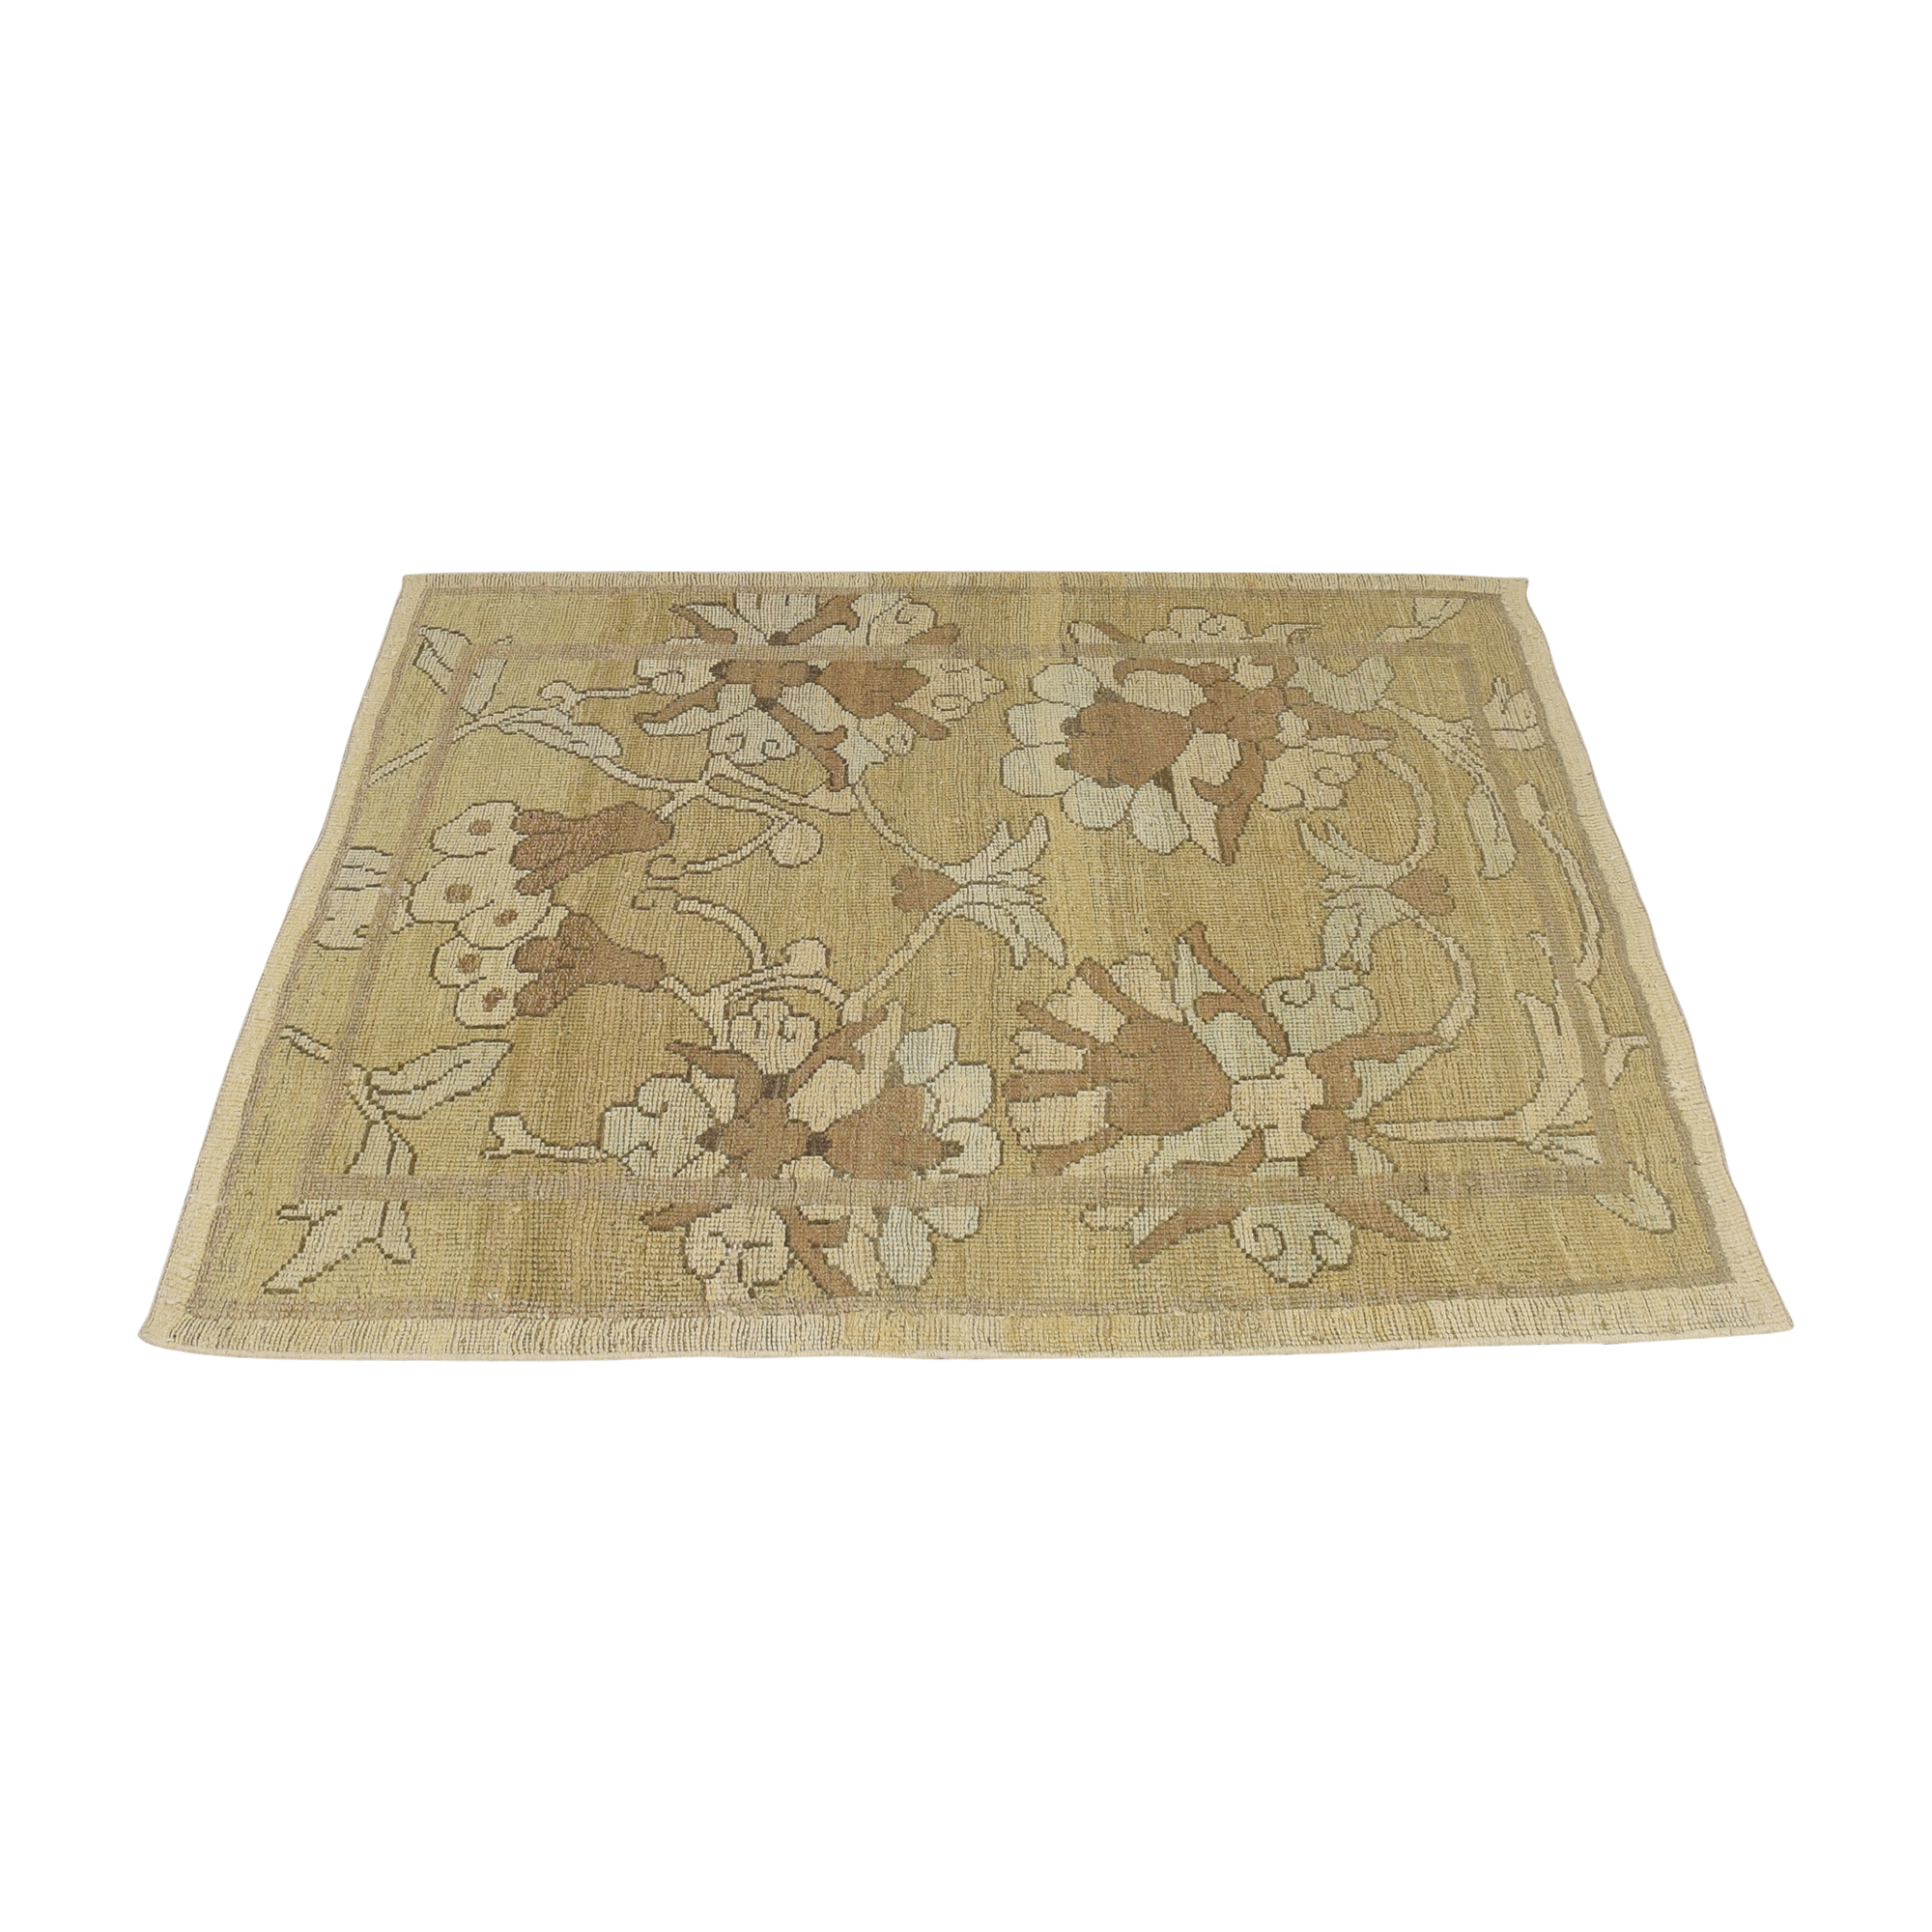 shop ABC Carpet & Home Patterned Area Rug ABC Carpet & Home Rugs